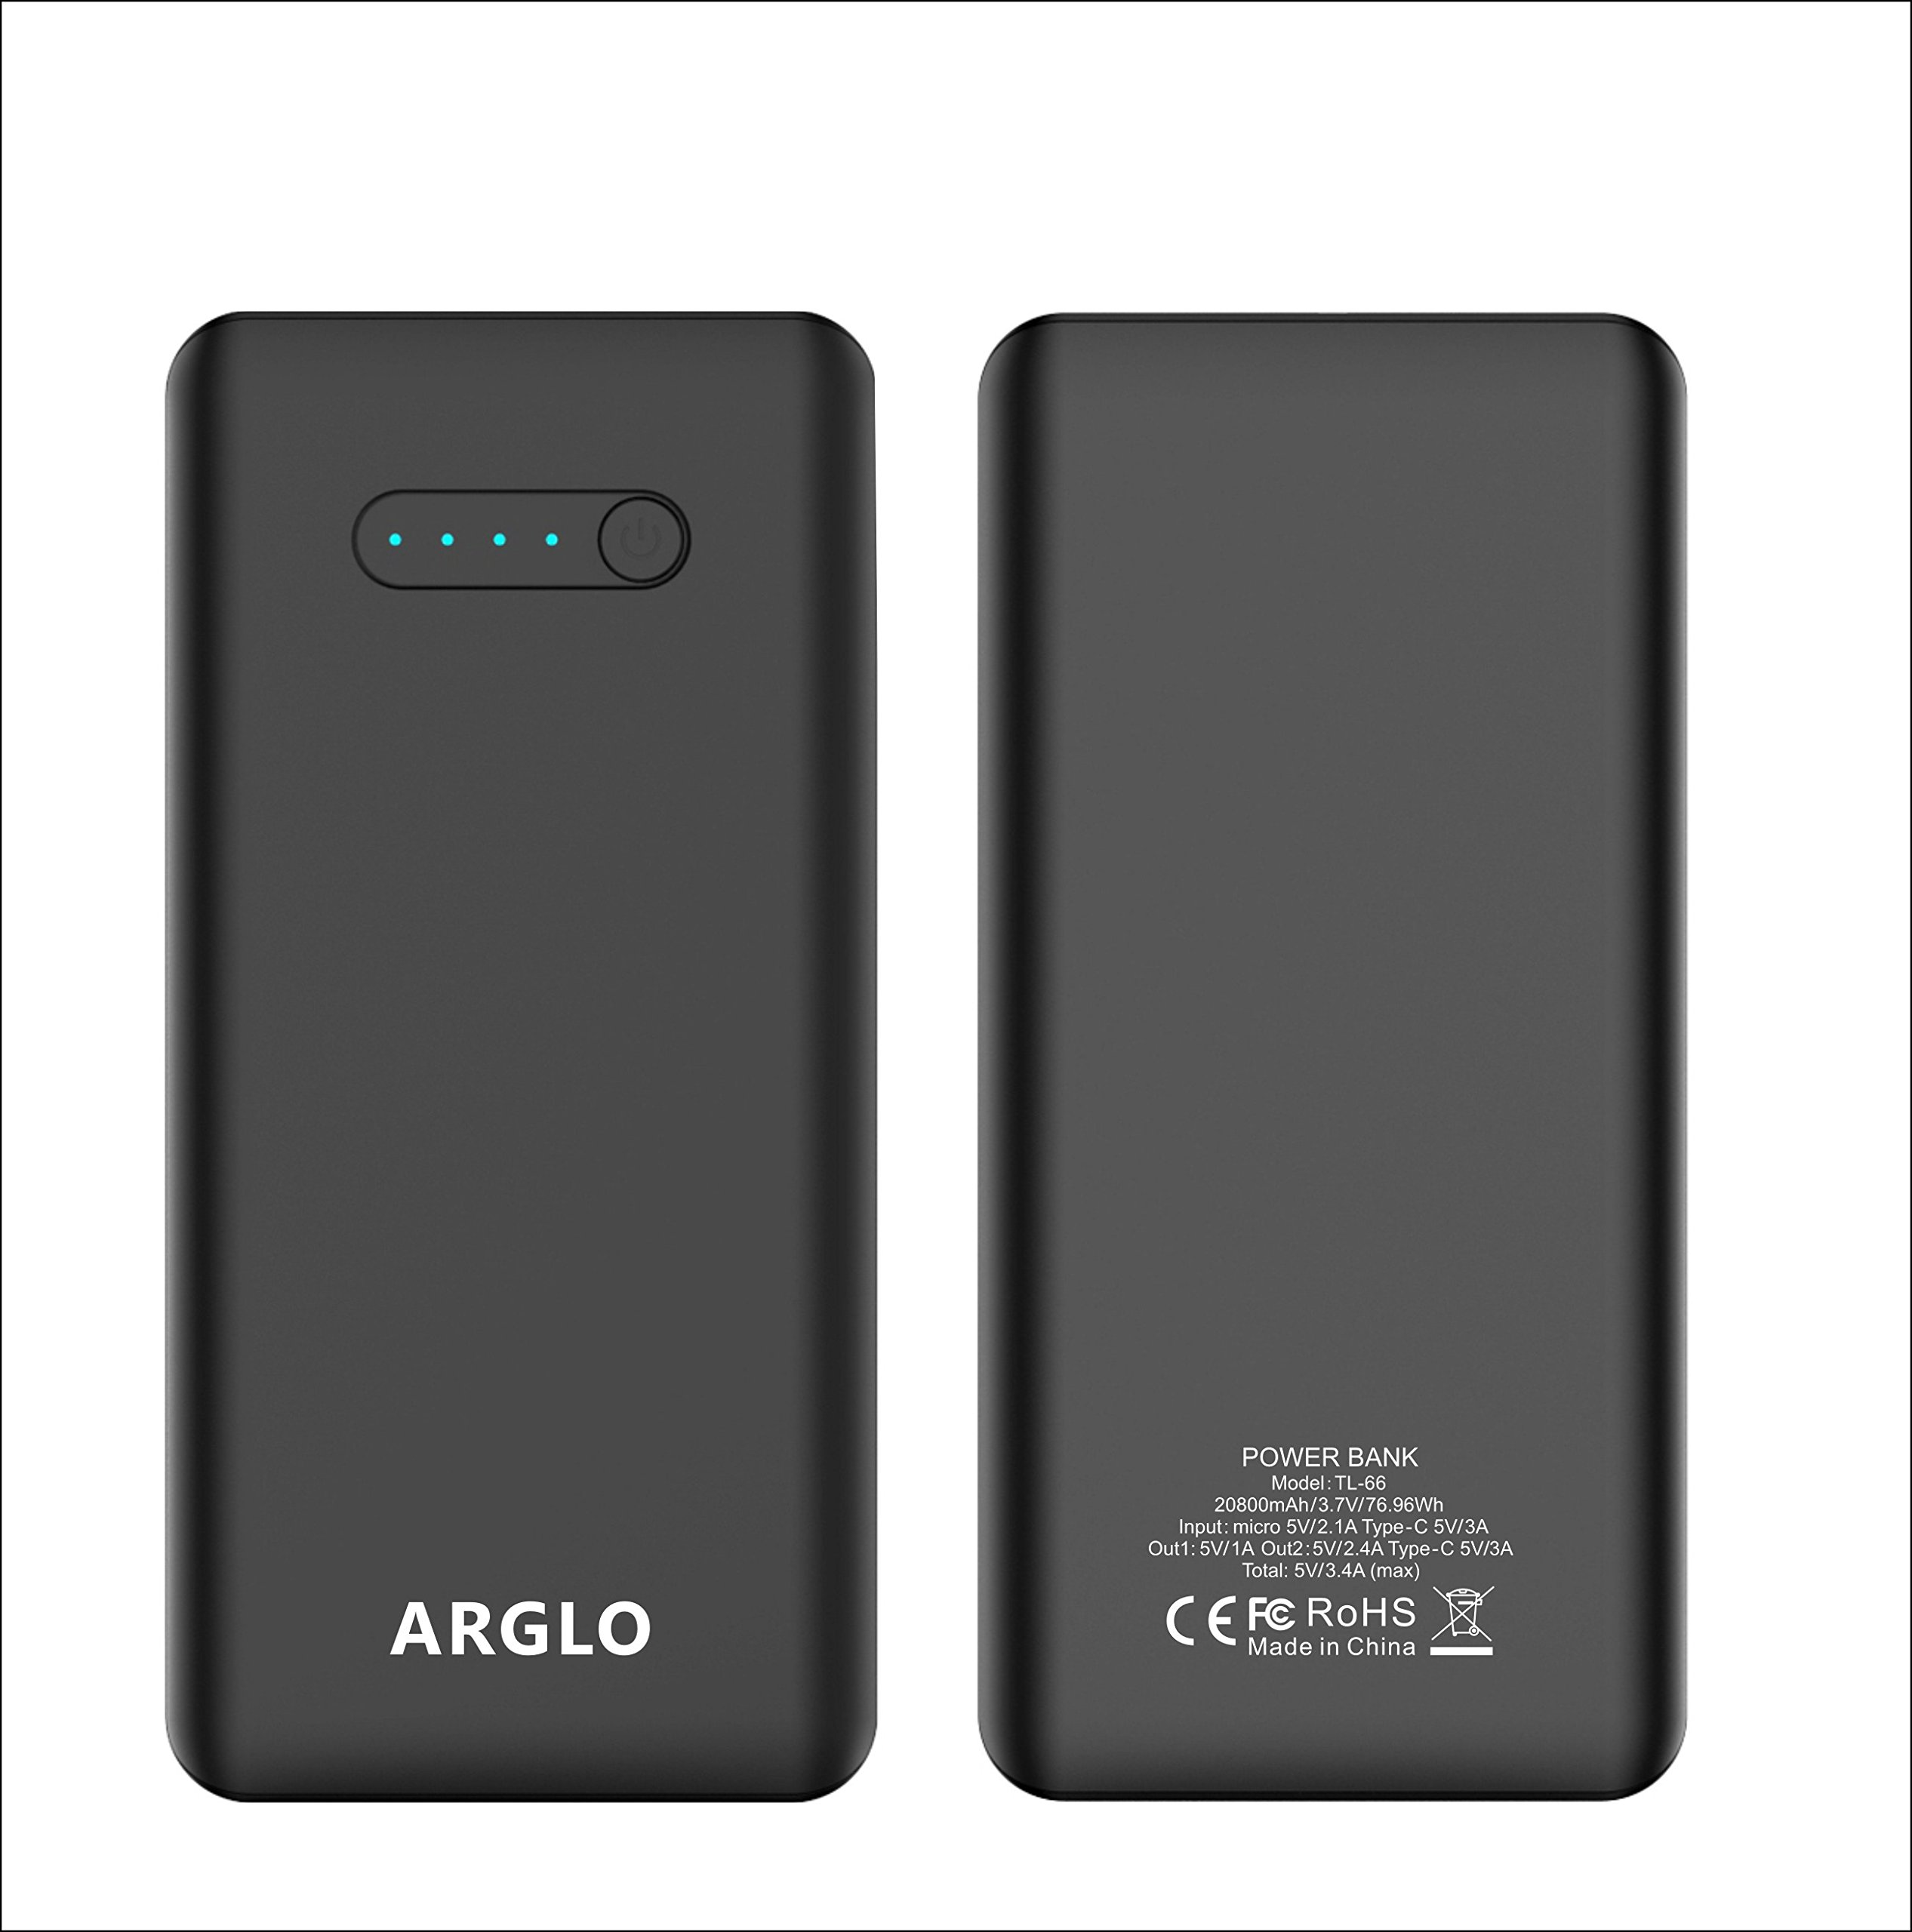 Portable Charger PowerCore 20800mAh - USB-C Premium Power bank by Arglo, Faster, safer charging with our advance technology. Ultra-high capacity for Galaxy S8, Note 8, iPhone and More (black)